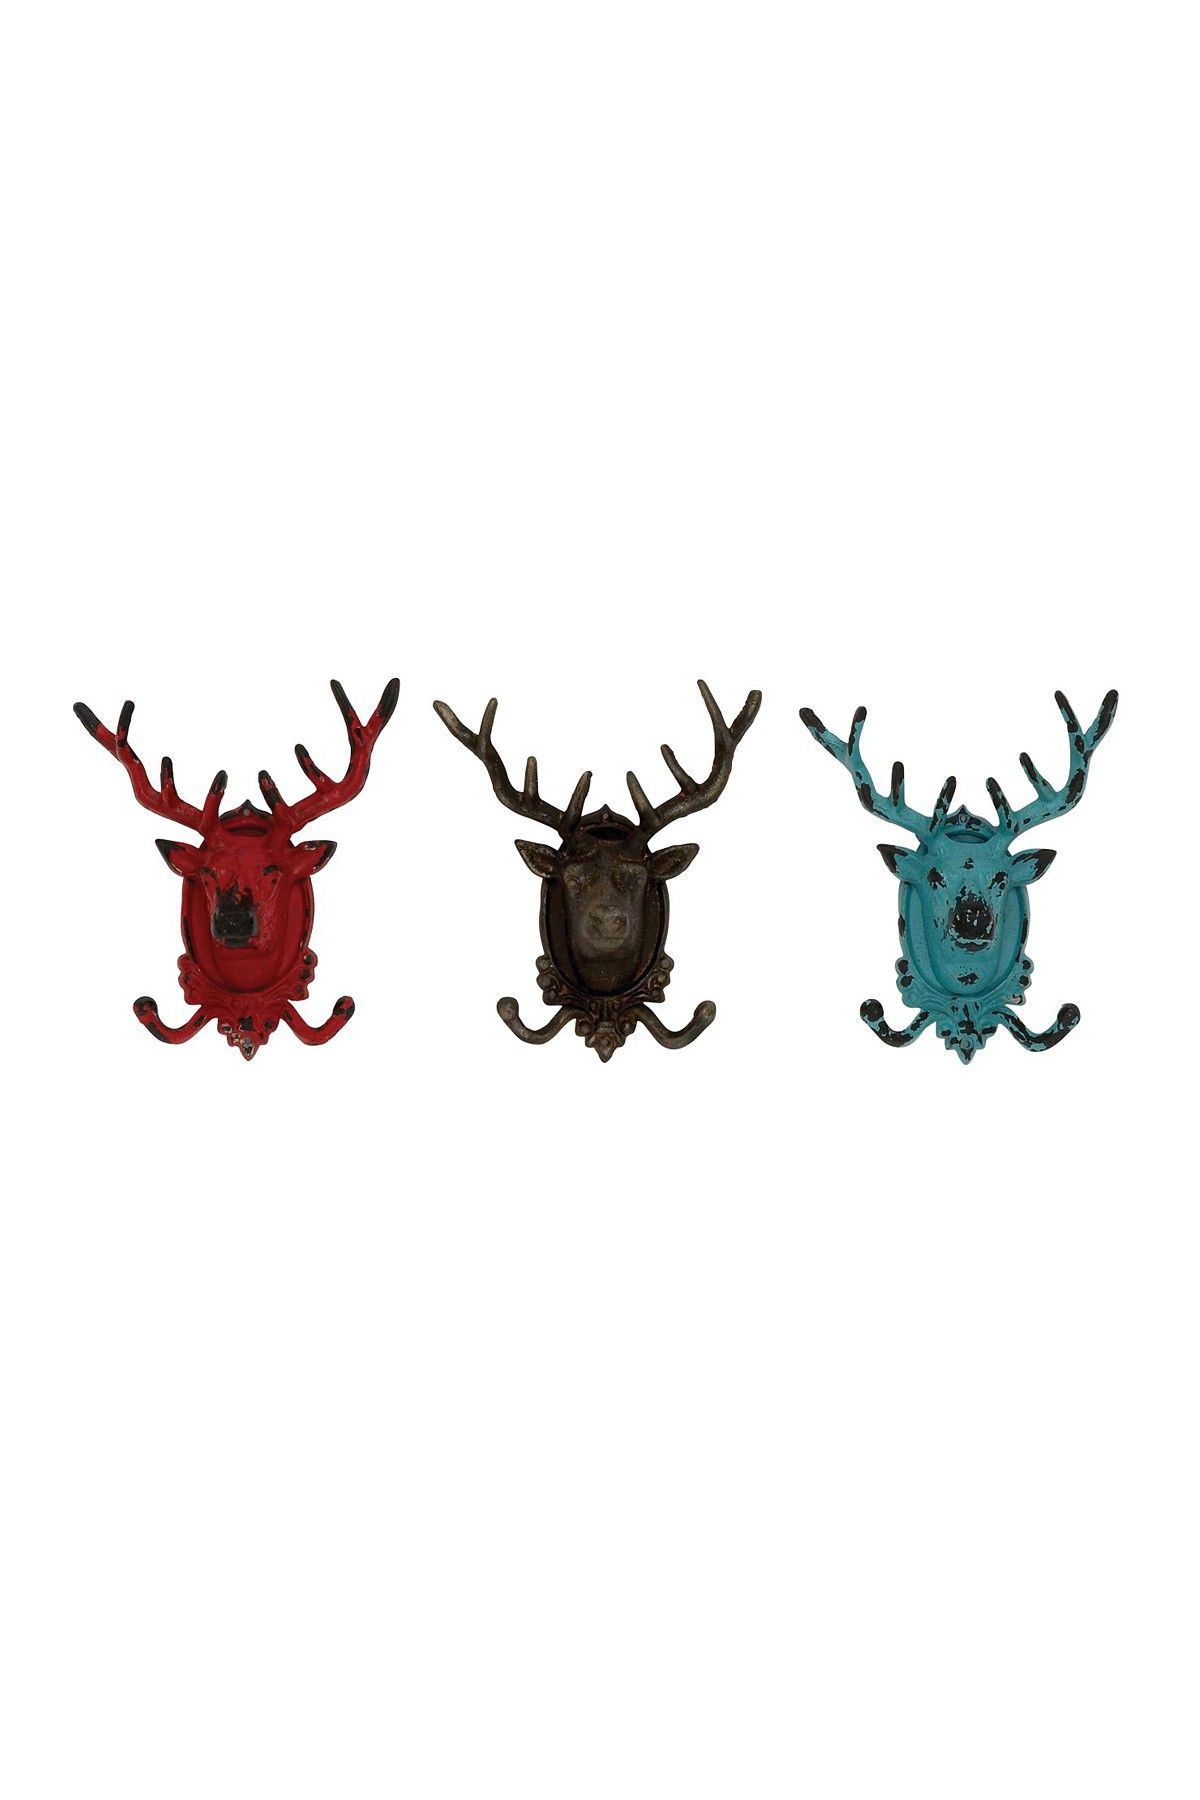 Rustic Vintage Decor Metal Deer Hooks - Set of 3 $69.00 | Log Cabin ...